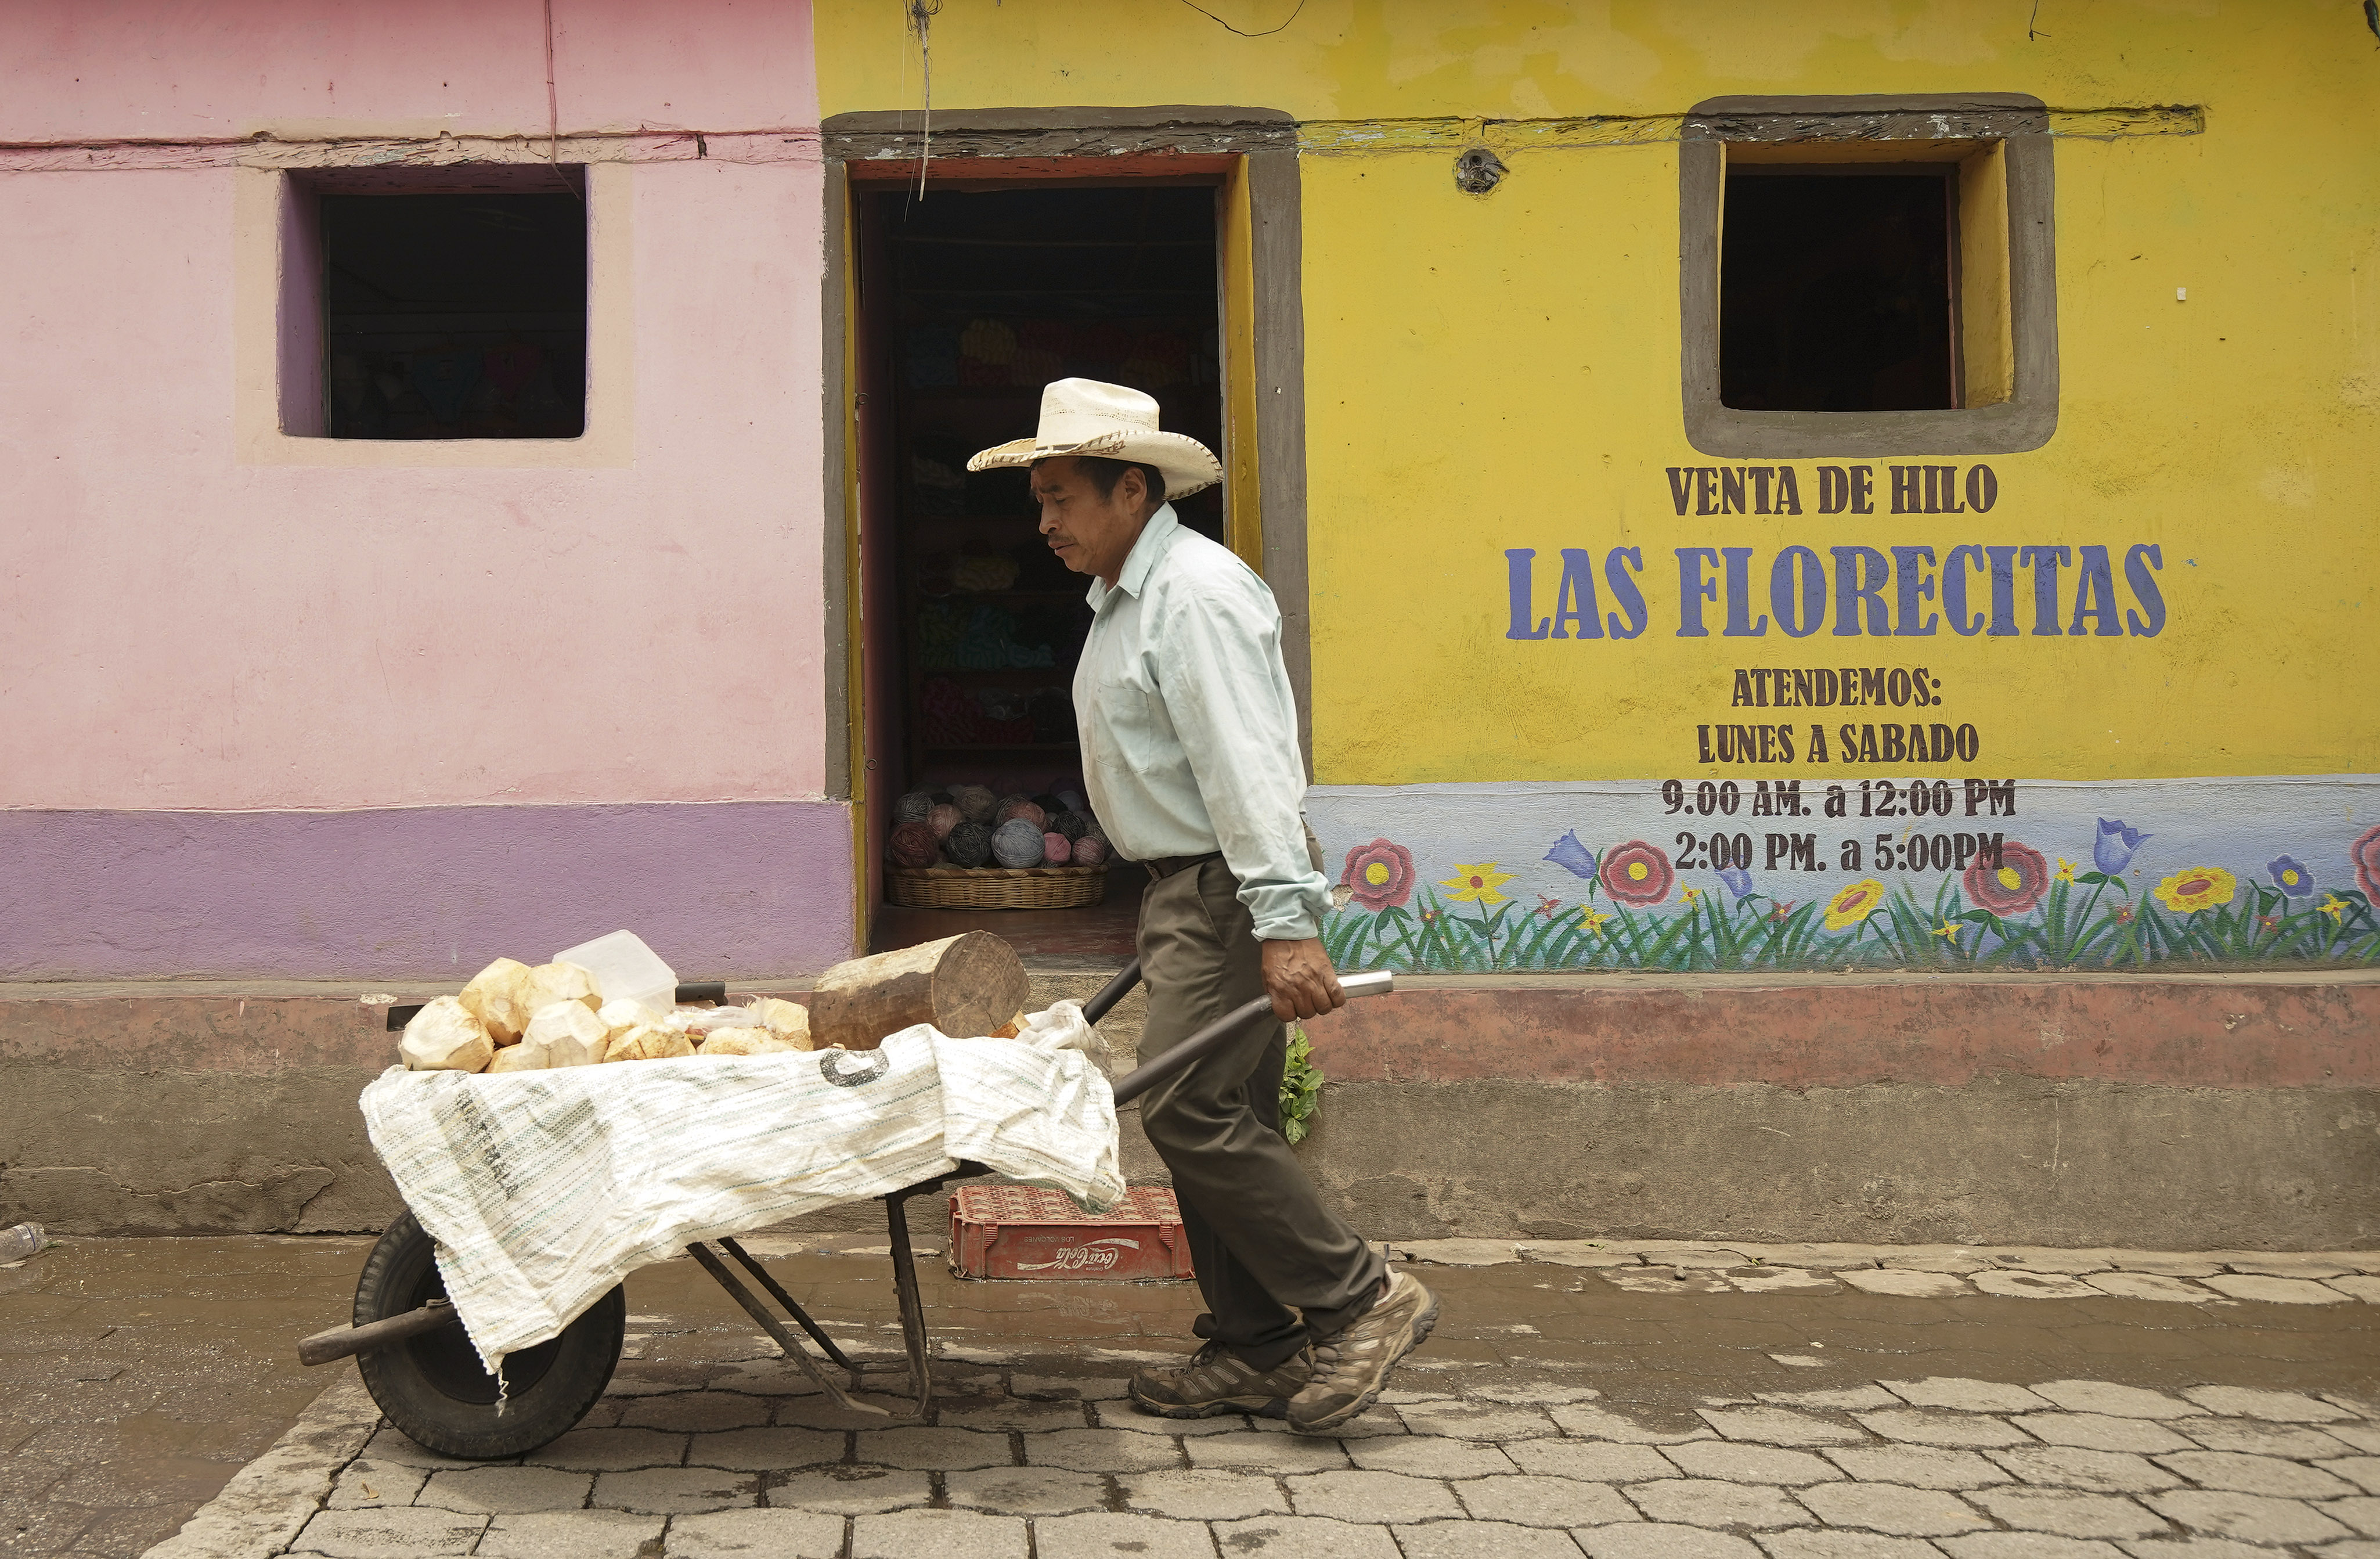 A man sells coconuts in San Cruz, Guatemala, on Monday, Aug. 19, 2019. President Russell M. Nelson of The Church of Jesus Christ of Latter-day Saints spoke in a devotional on Saturday, Aug. 24 in Guatemala City.